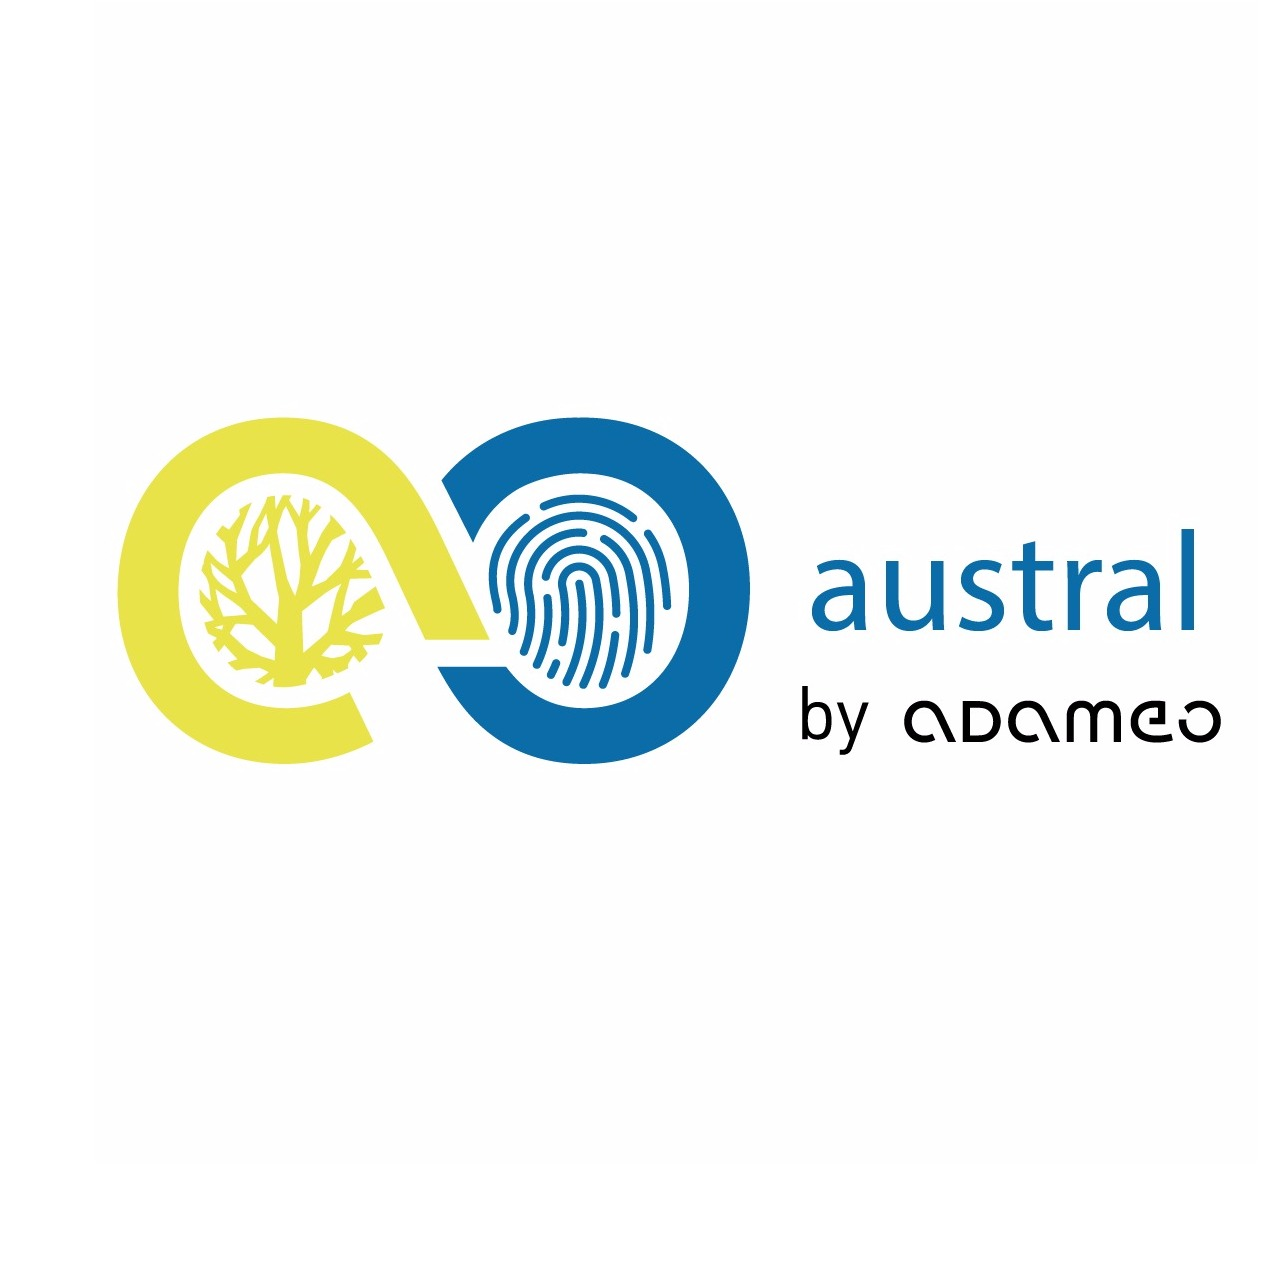 the austral by adameo logo.